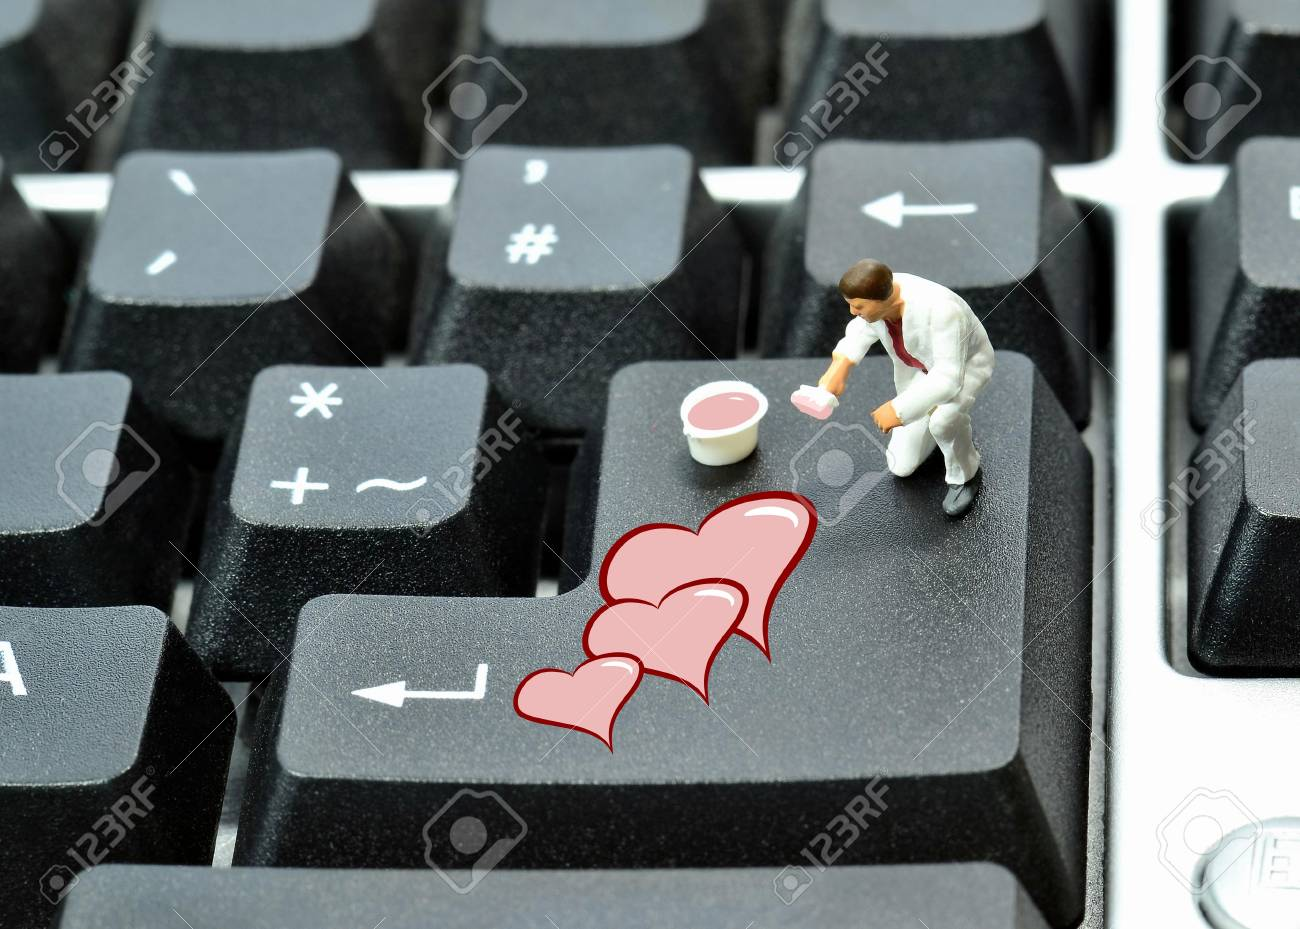 Online dating concept Stock Photo - 17476184